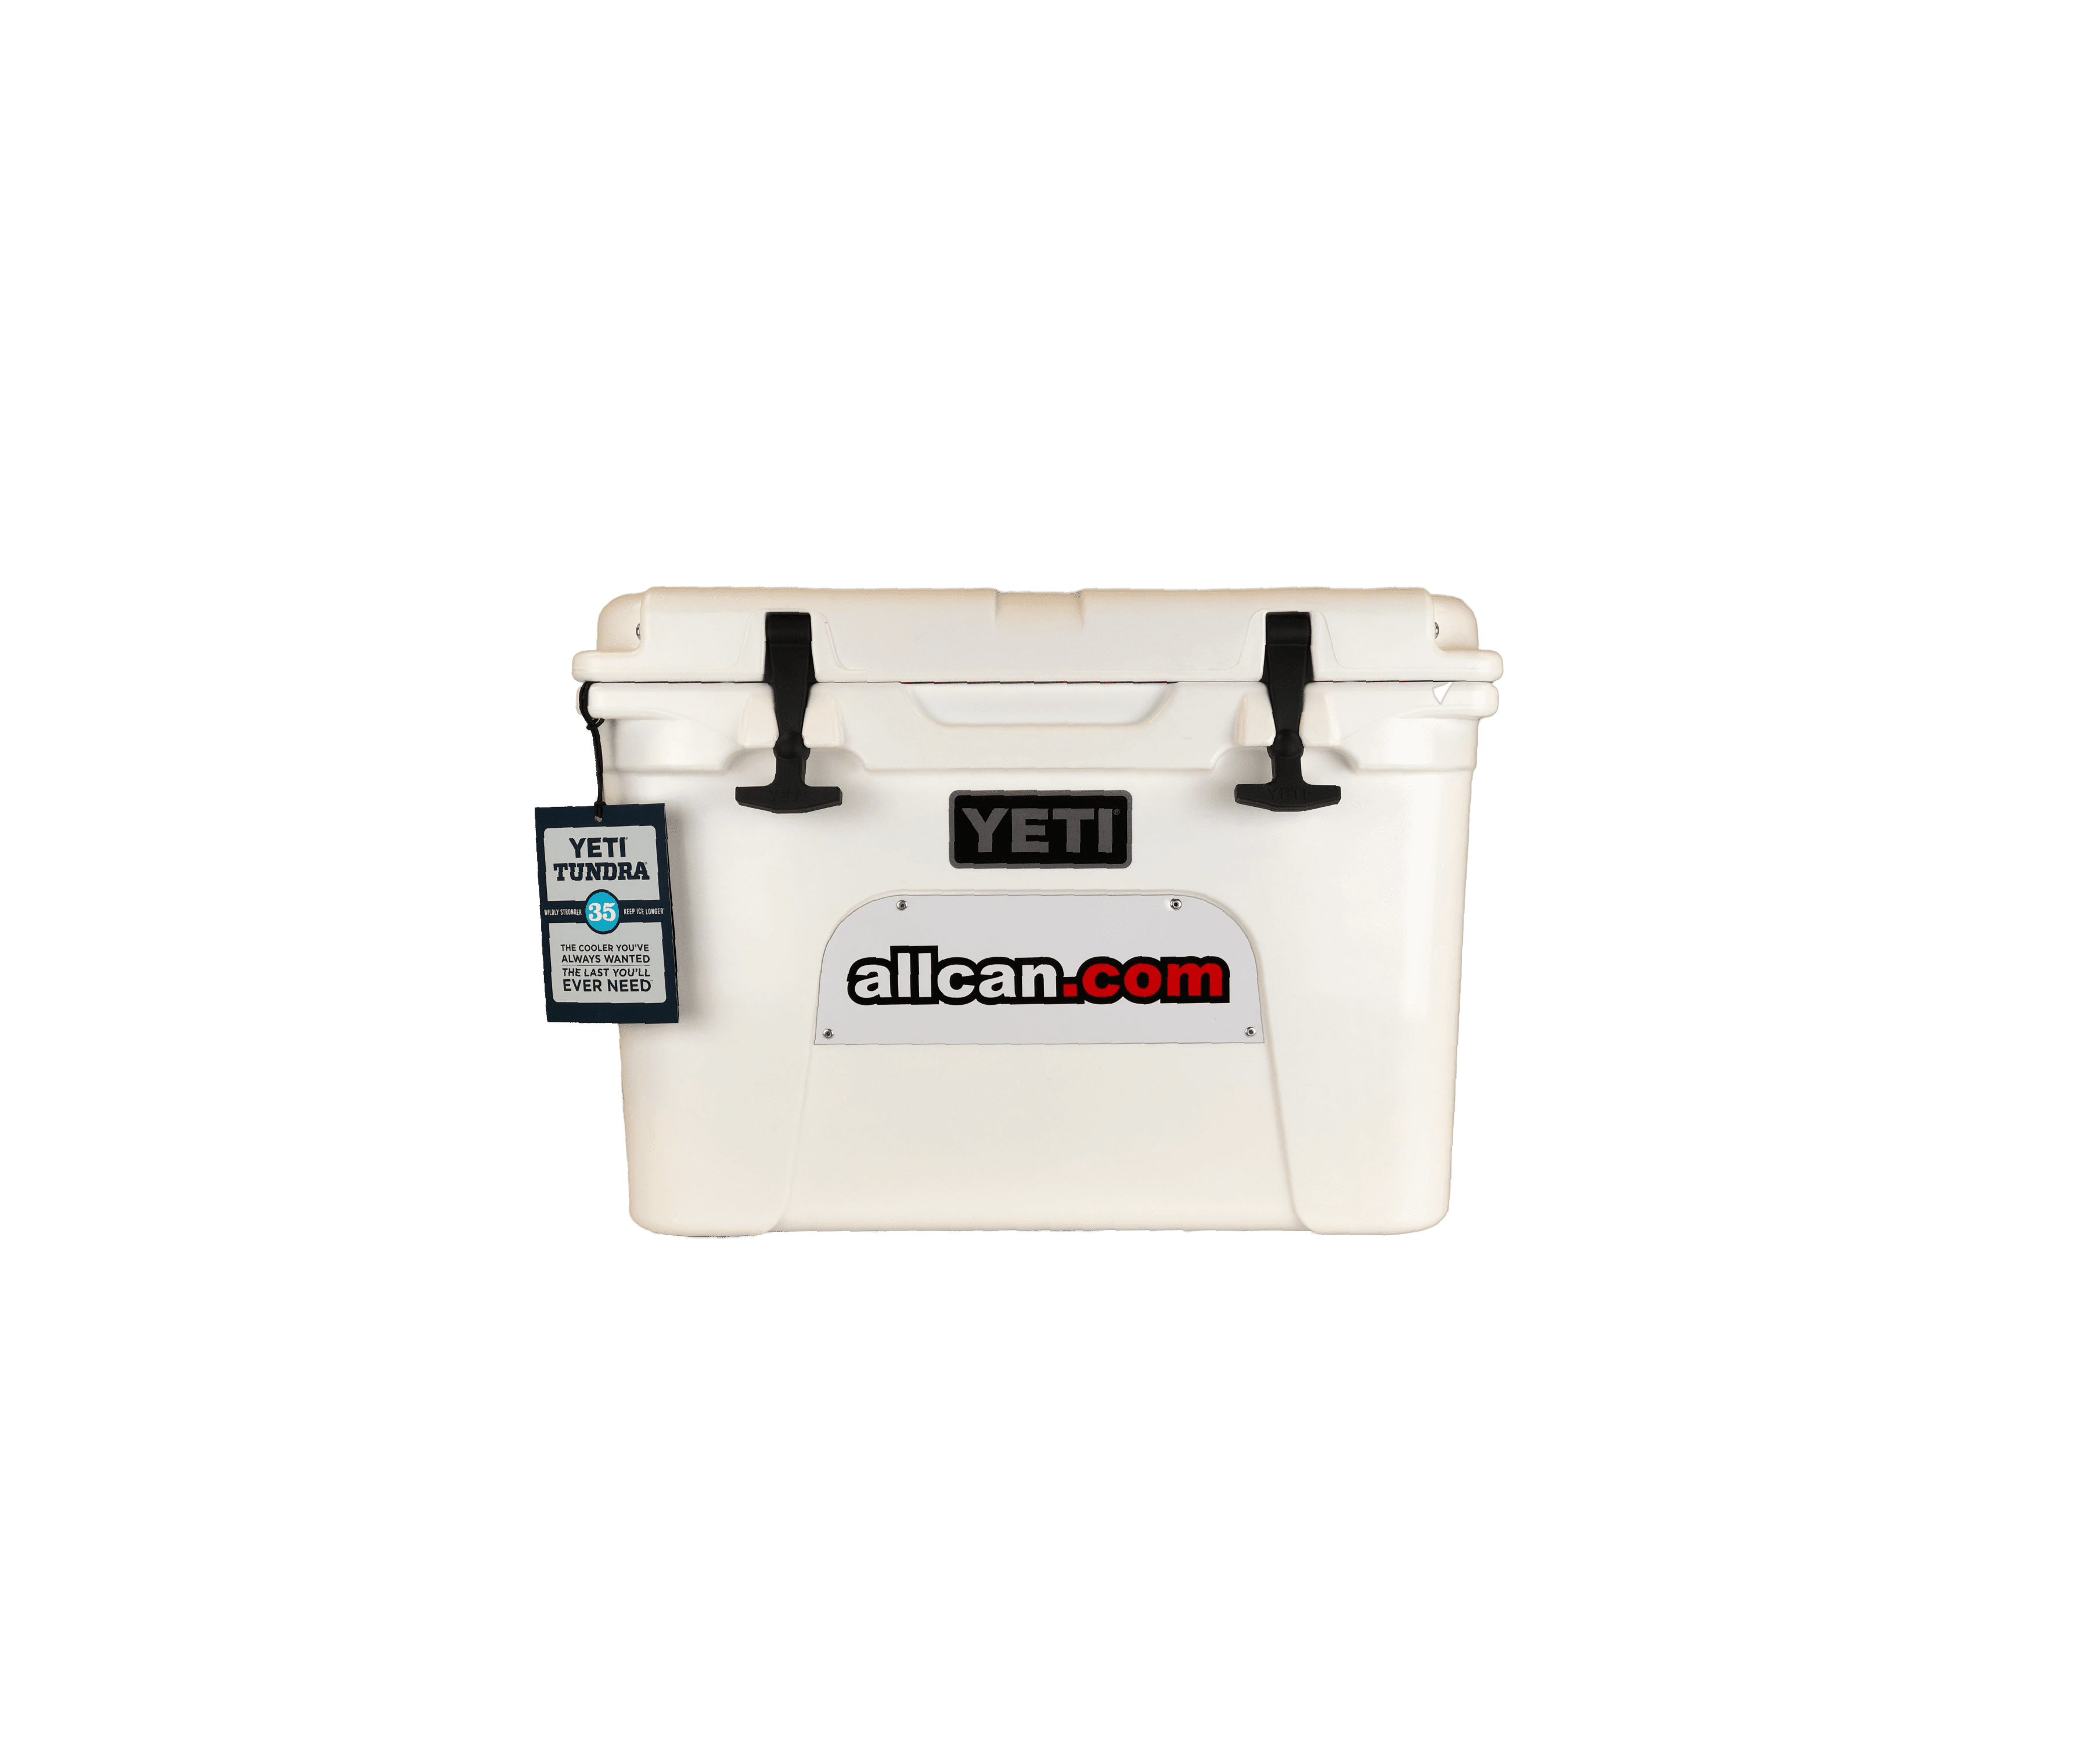 YETI Giveaway Contest